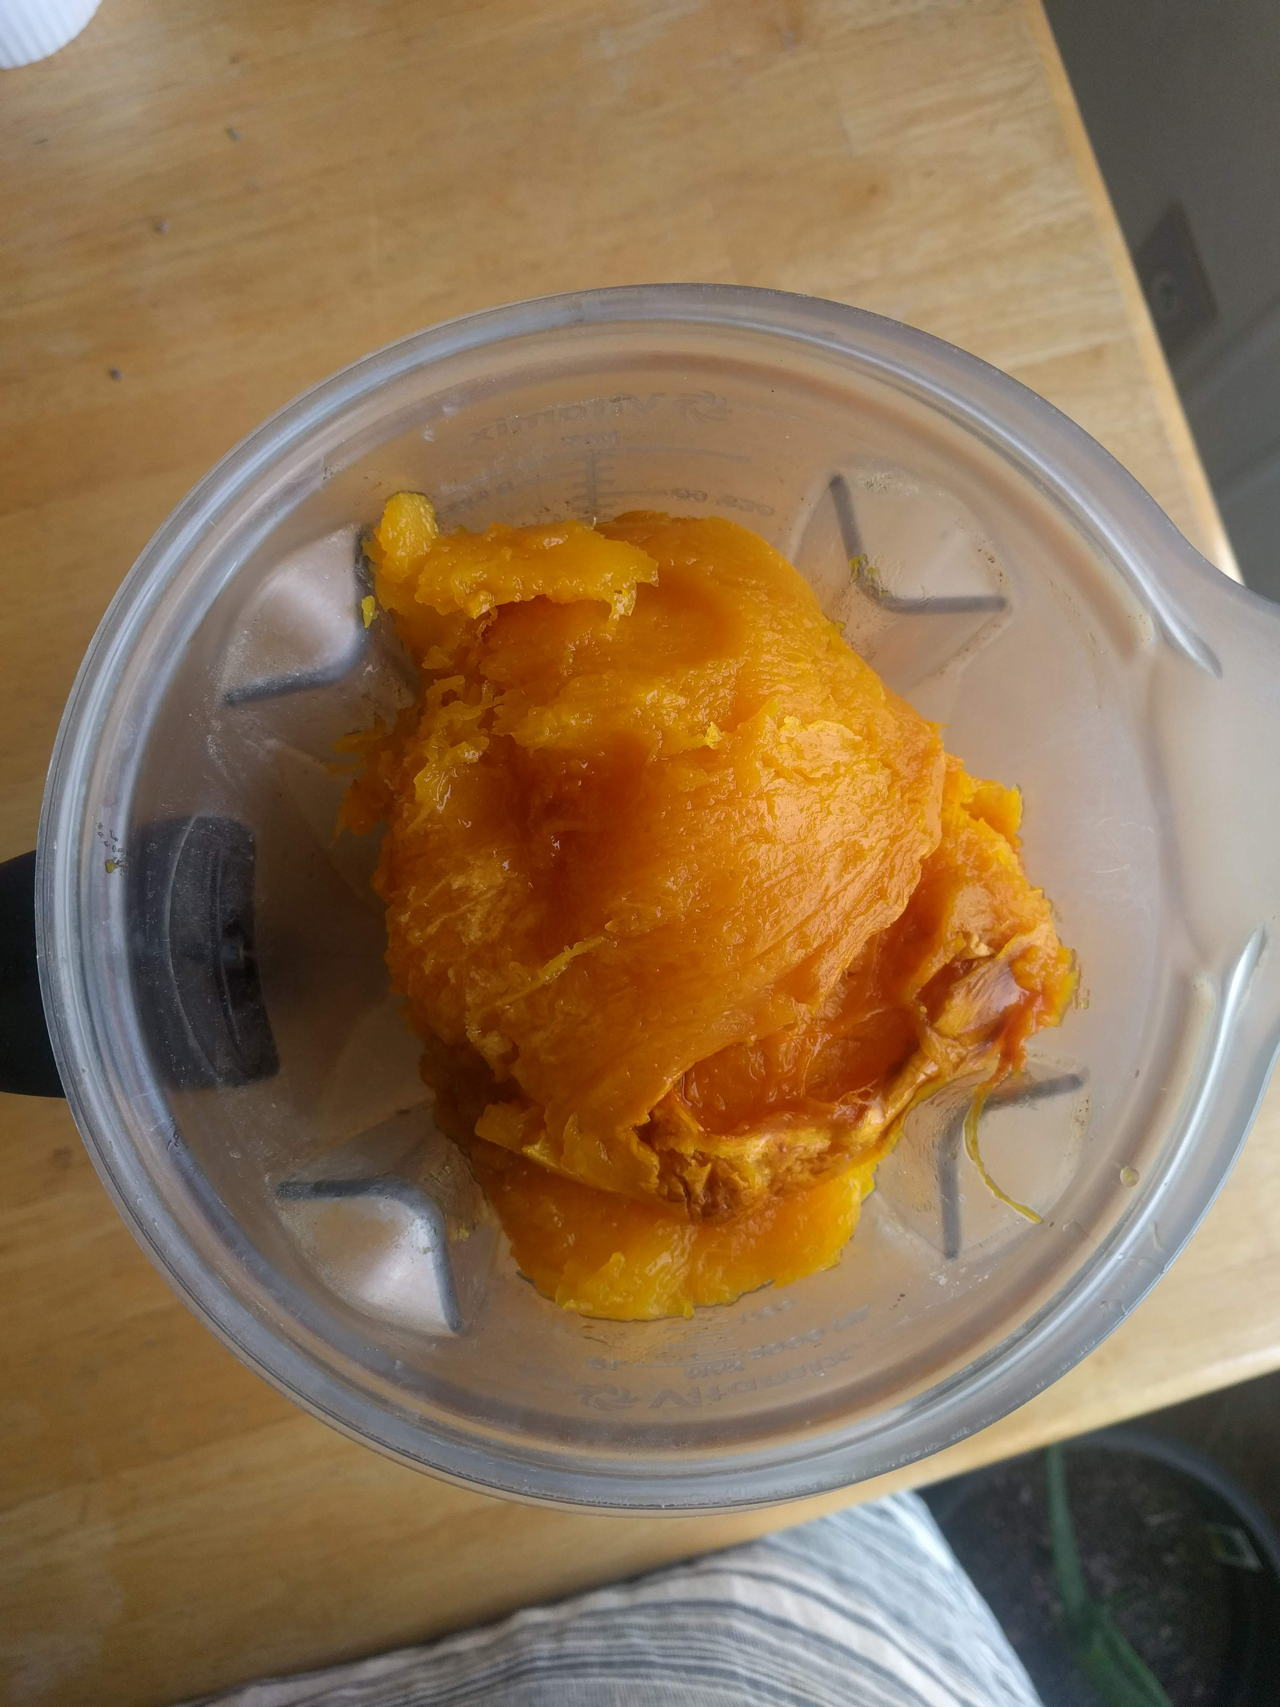 How To Make Pumpkin Purée From Scratch - From how to choose a pumpkin, how to roast a pumpkin, and how to store your homemade pumpkin purée: get the recipe today! #recipe #pumpkin #holidayrecipe #pumpkinrecipe #healthyrecipes